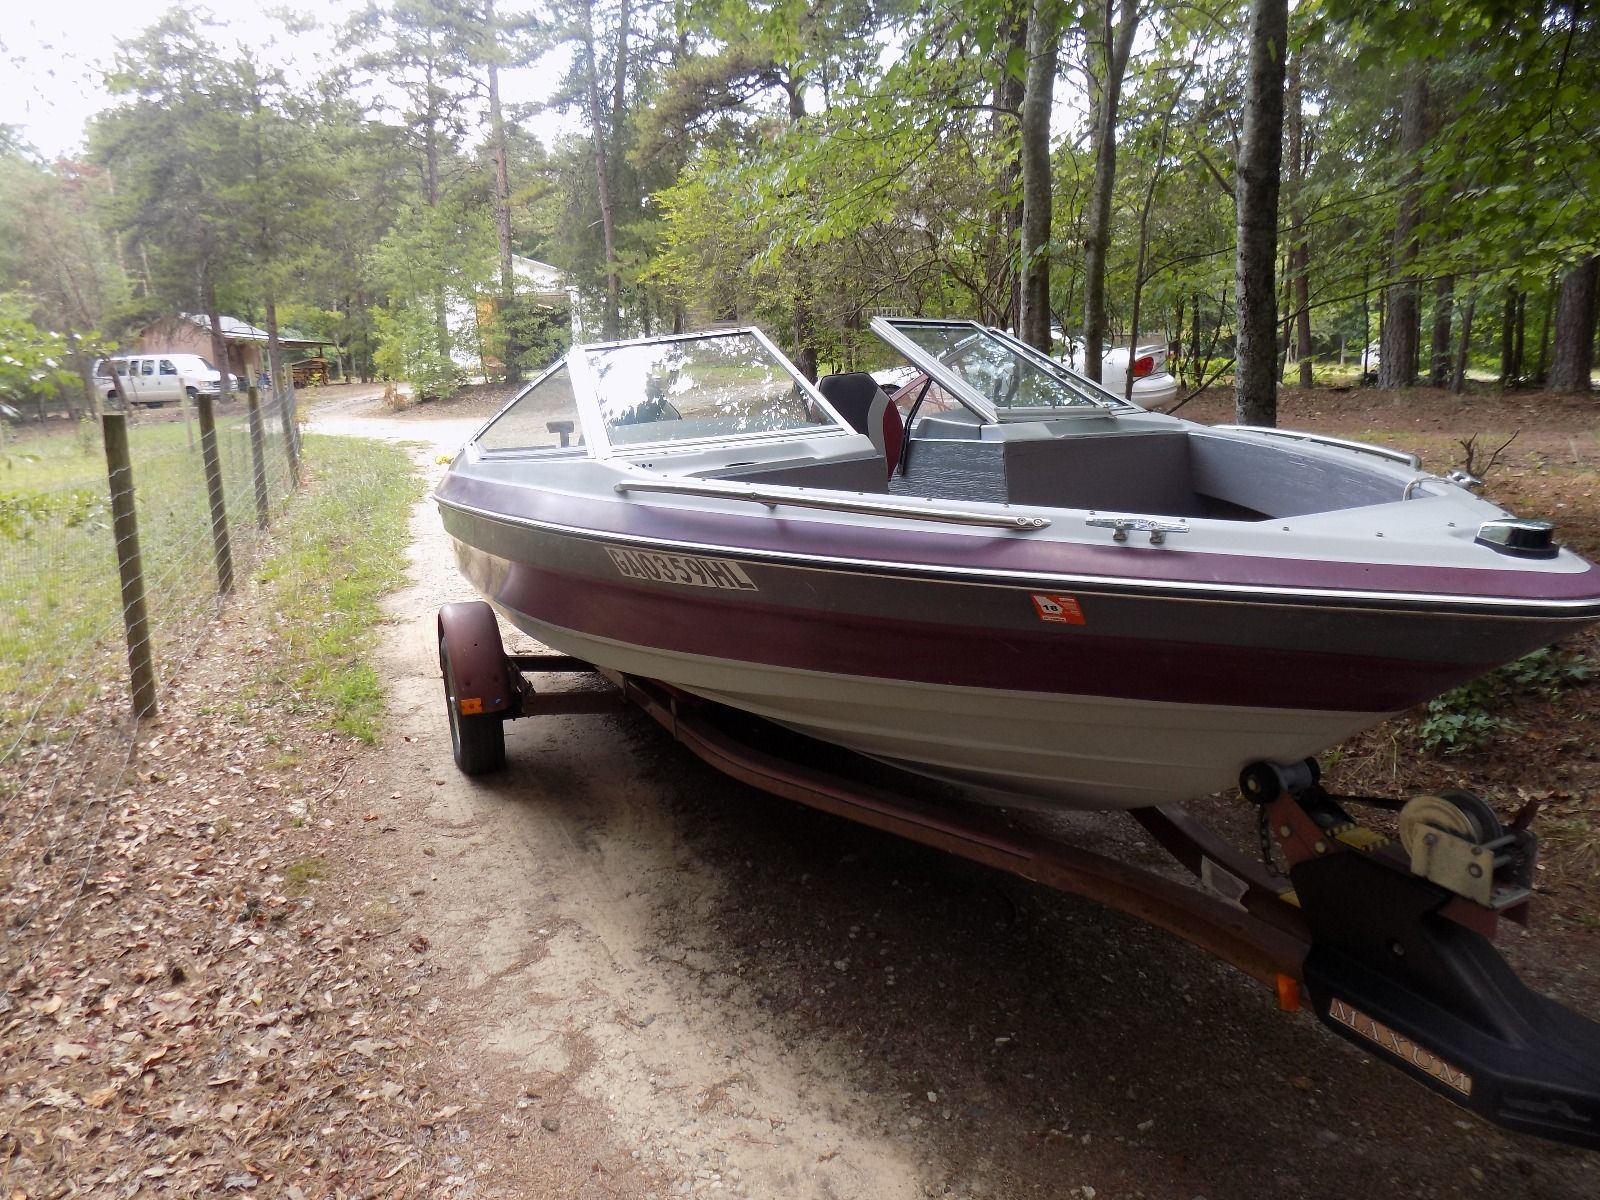 Maxum Ski Boat 1989 for sale for $500 - Boats-from-USA.com